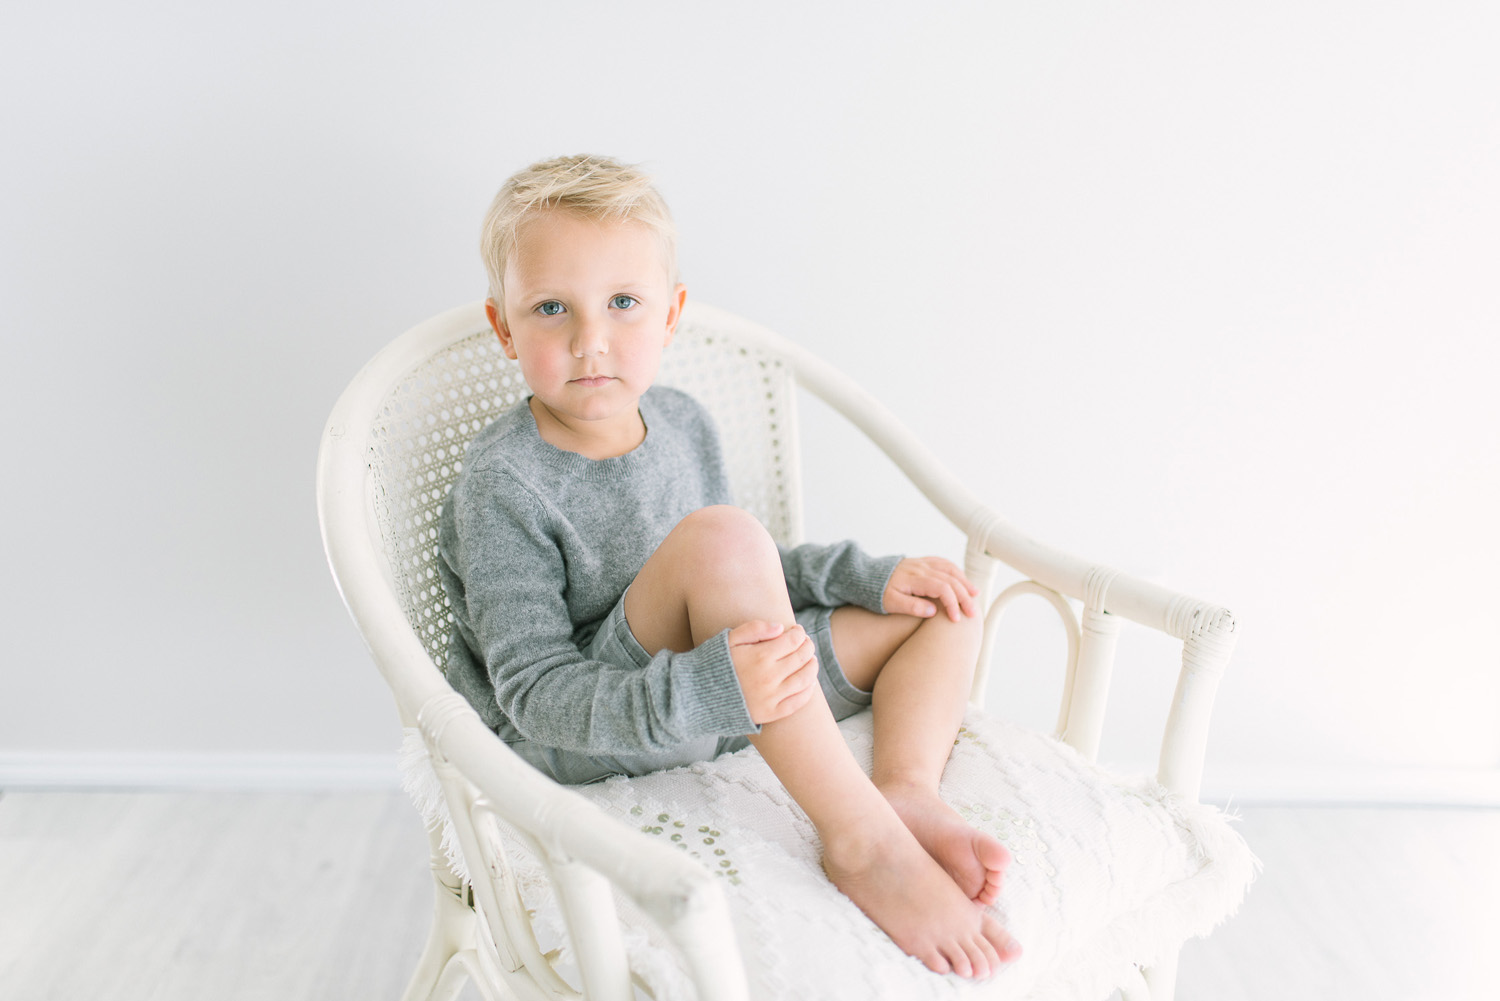 Young blond haired boy sitting on white cane chair during children's photography session in Sutherland Shire Baby and children's photography Studio in Sutherland Shire Sydney